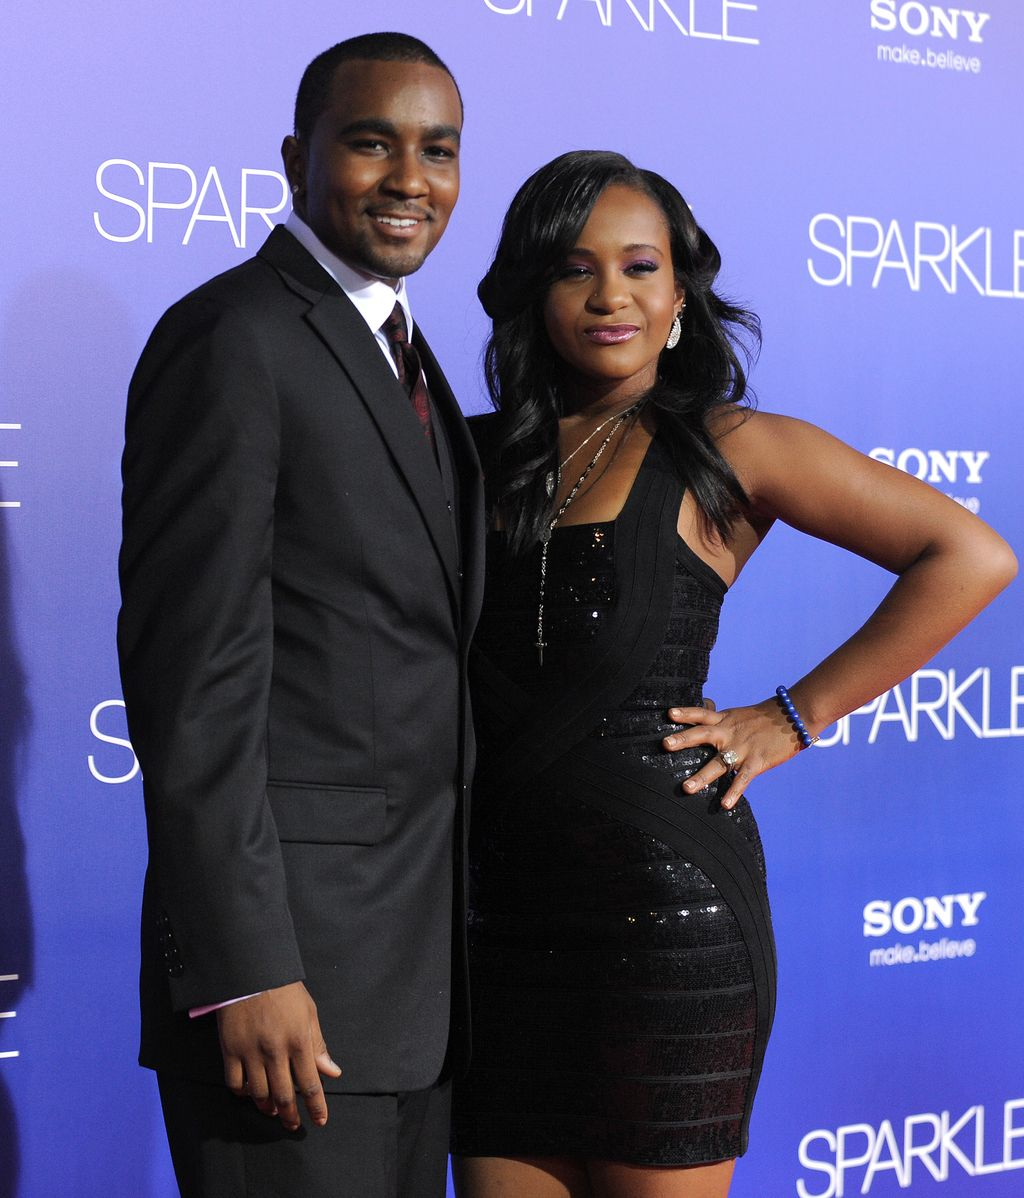 Bobbi Kristina Brown con su marido, Nick Gordon